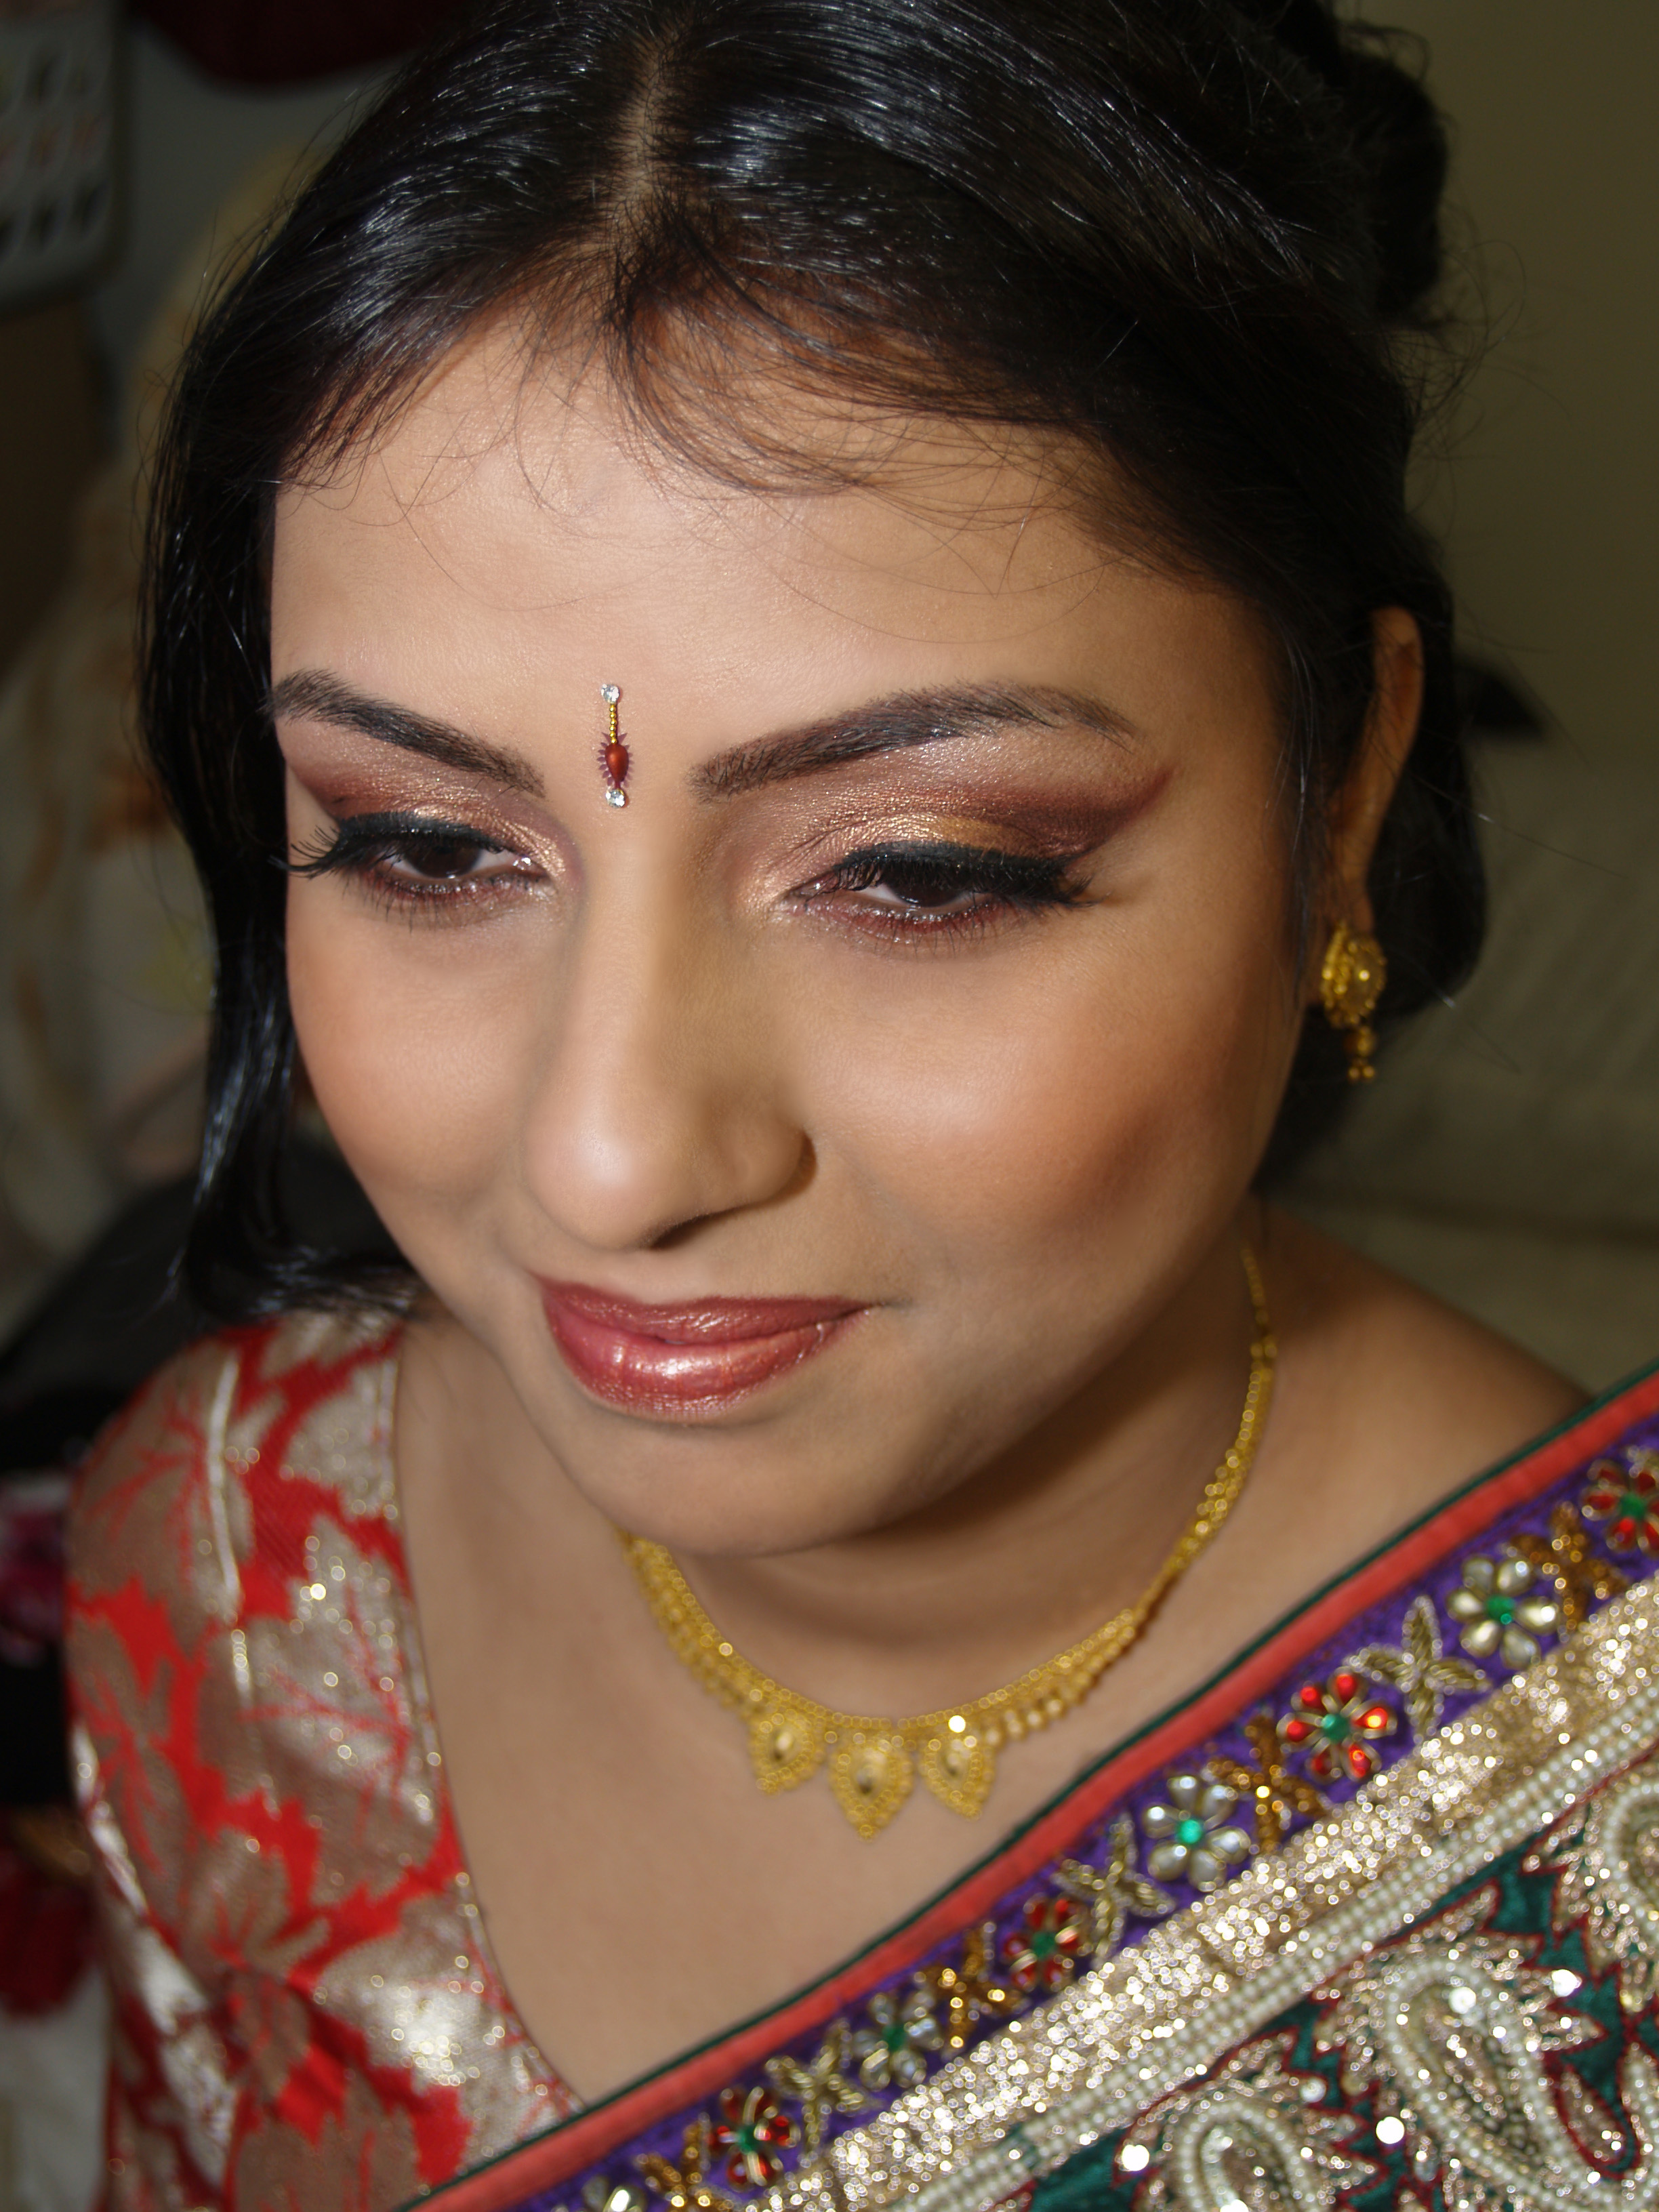 gita_indian_henna_makeup_silk_&_stone